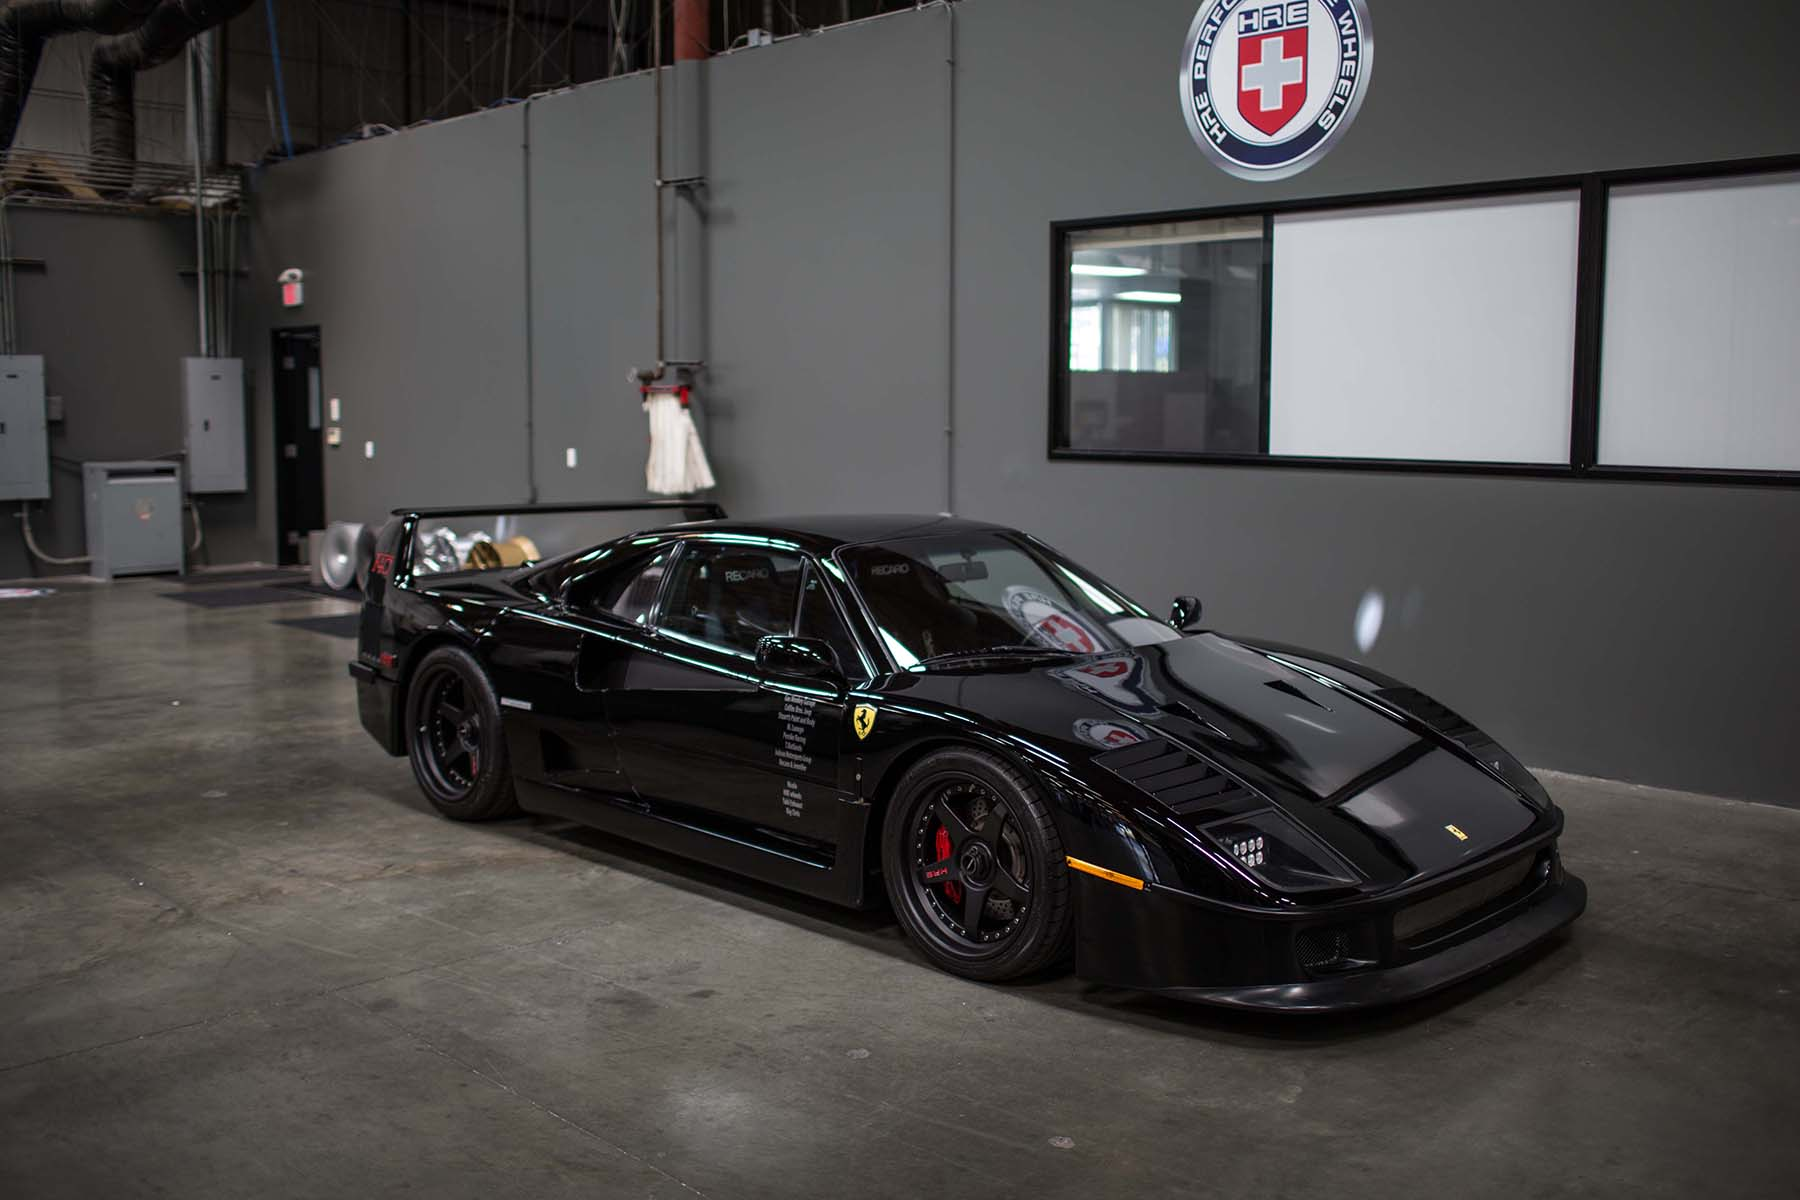 Supercars Equipped with HREs